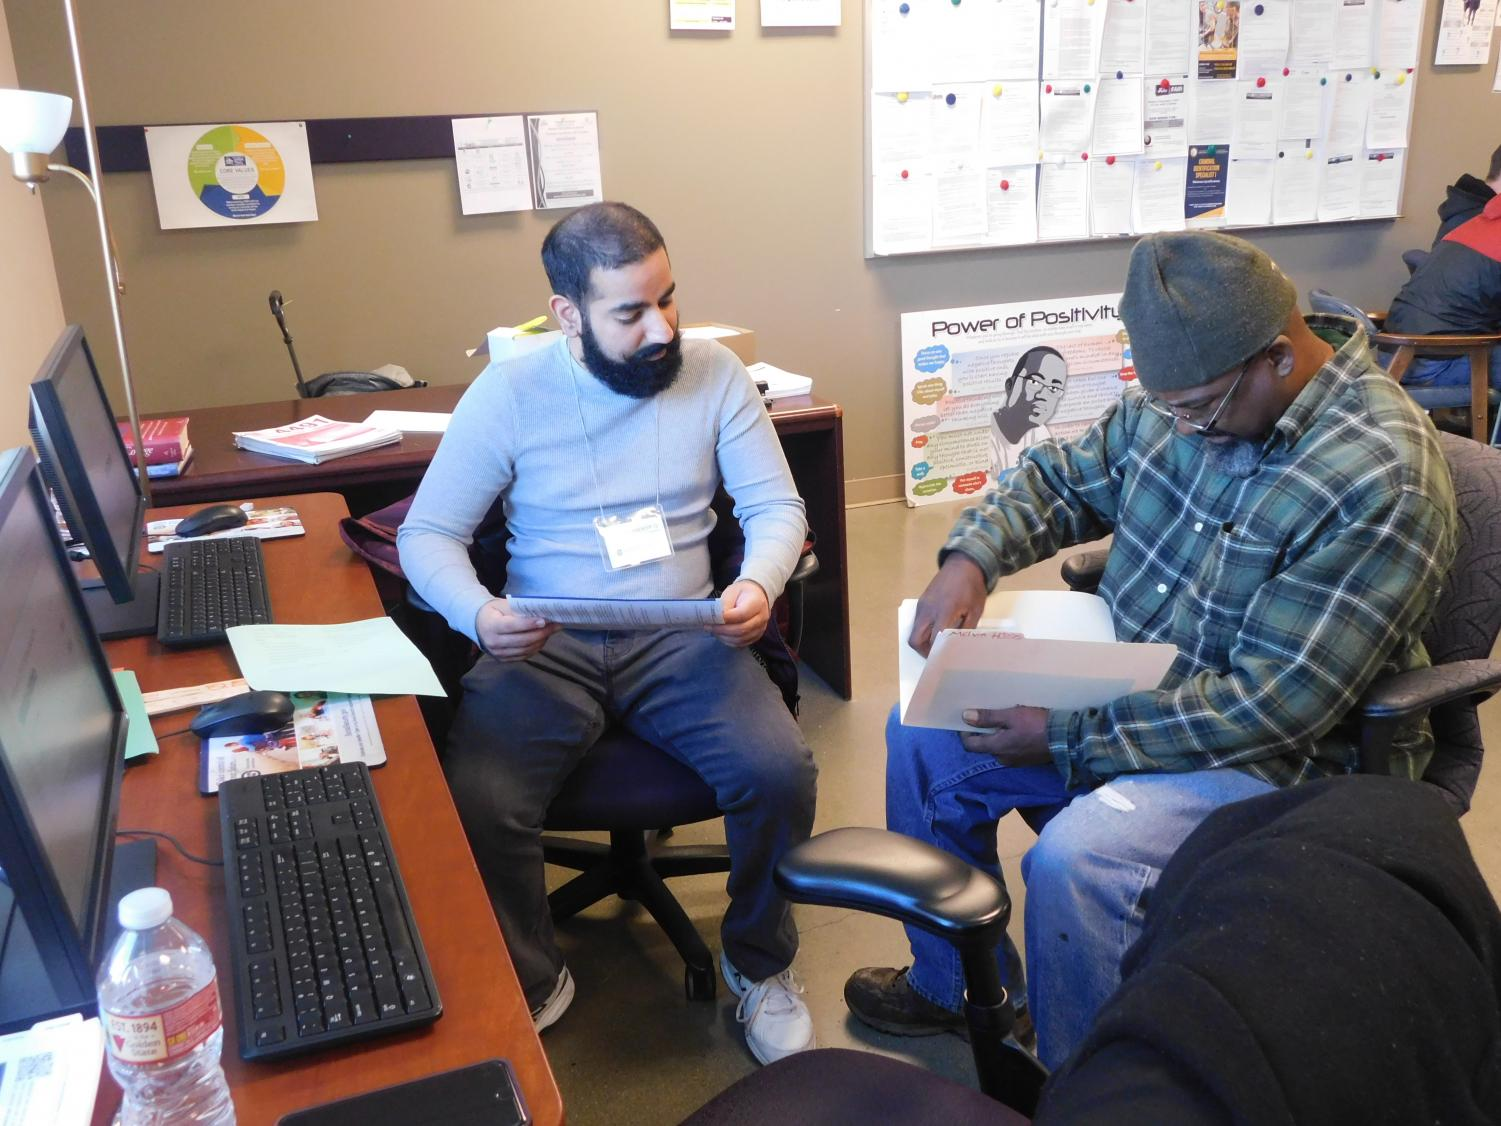 Sac State student volunteer Karandeep Gill assists an attendee with preparing his tax documents. The assistance was part of the free tax preparation event.